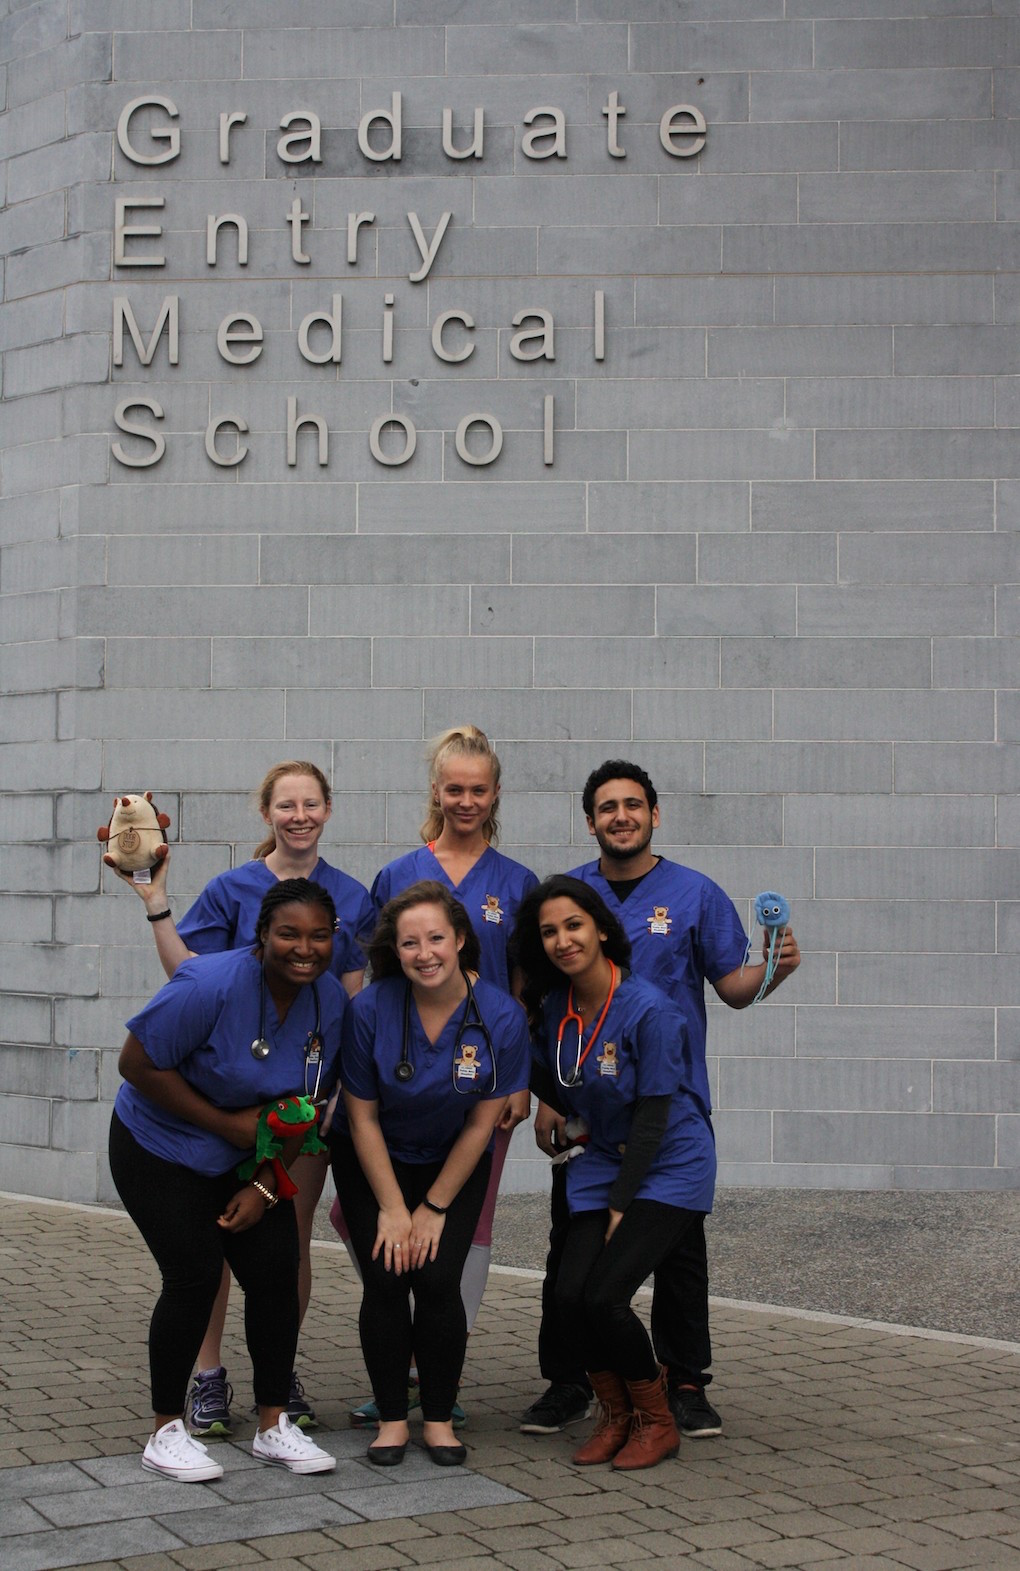 UL medical students are doing a Teddy Bears Hospital for the CARI Family Fun Day